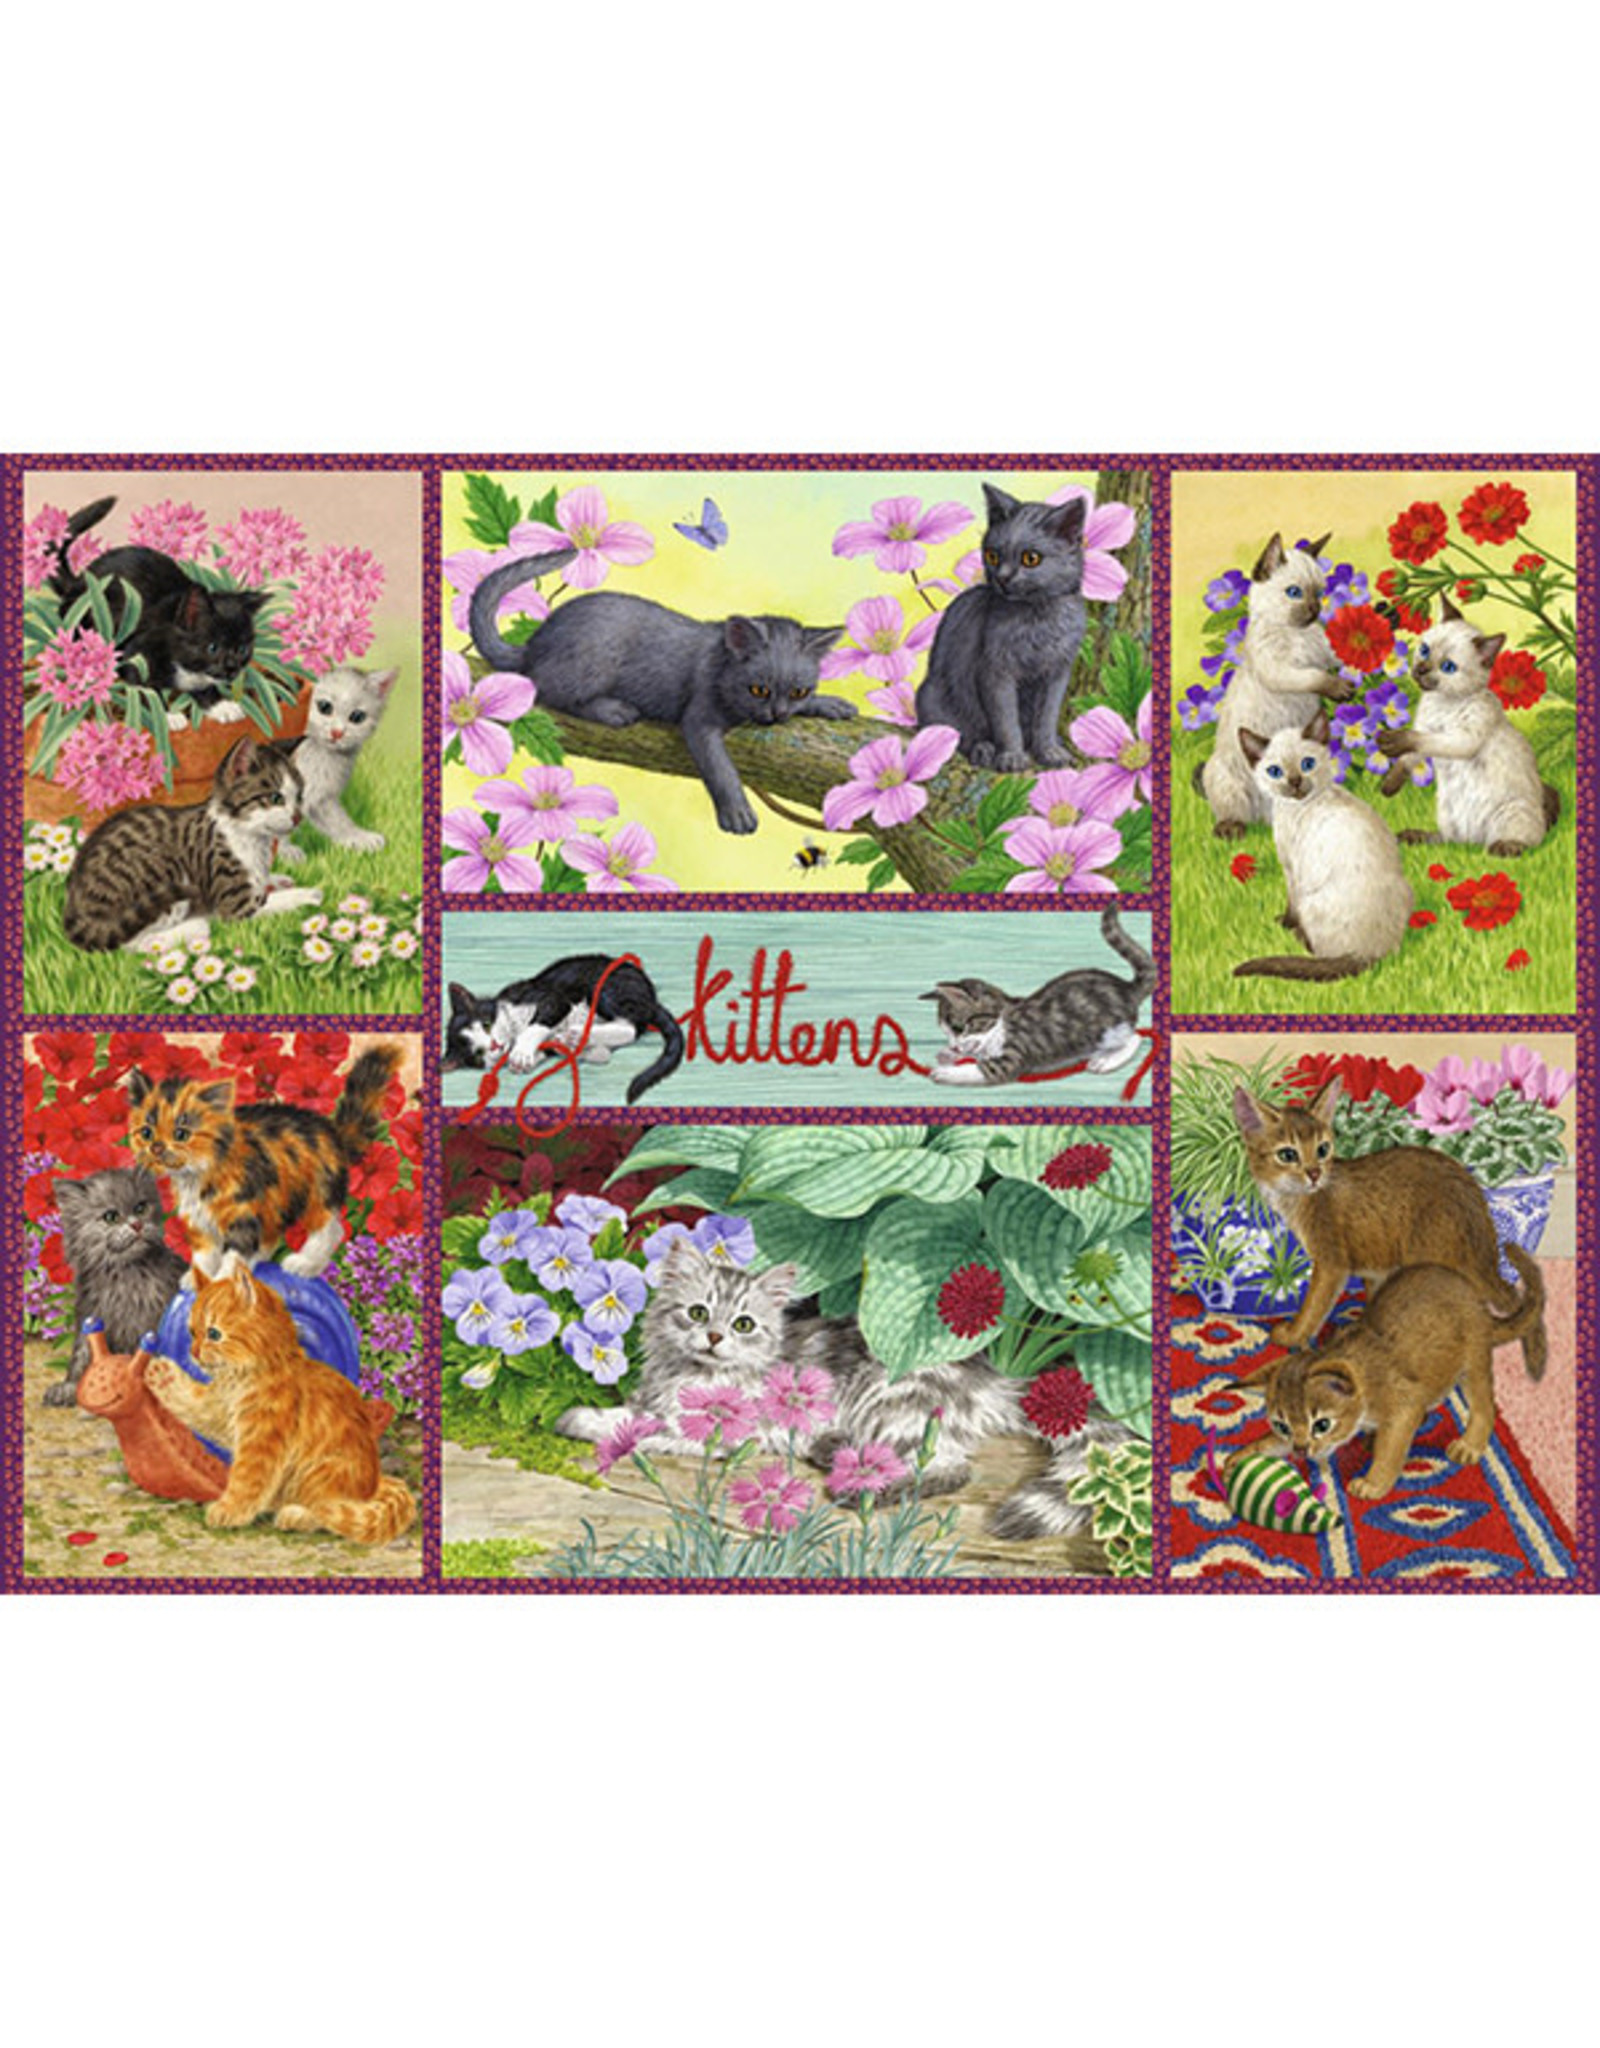 Falcon Playful Kittens 500pc Puzzle